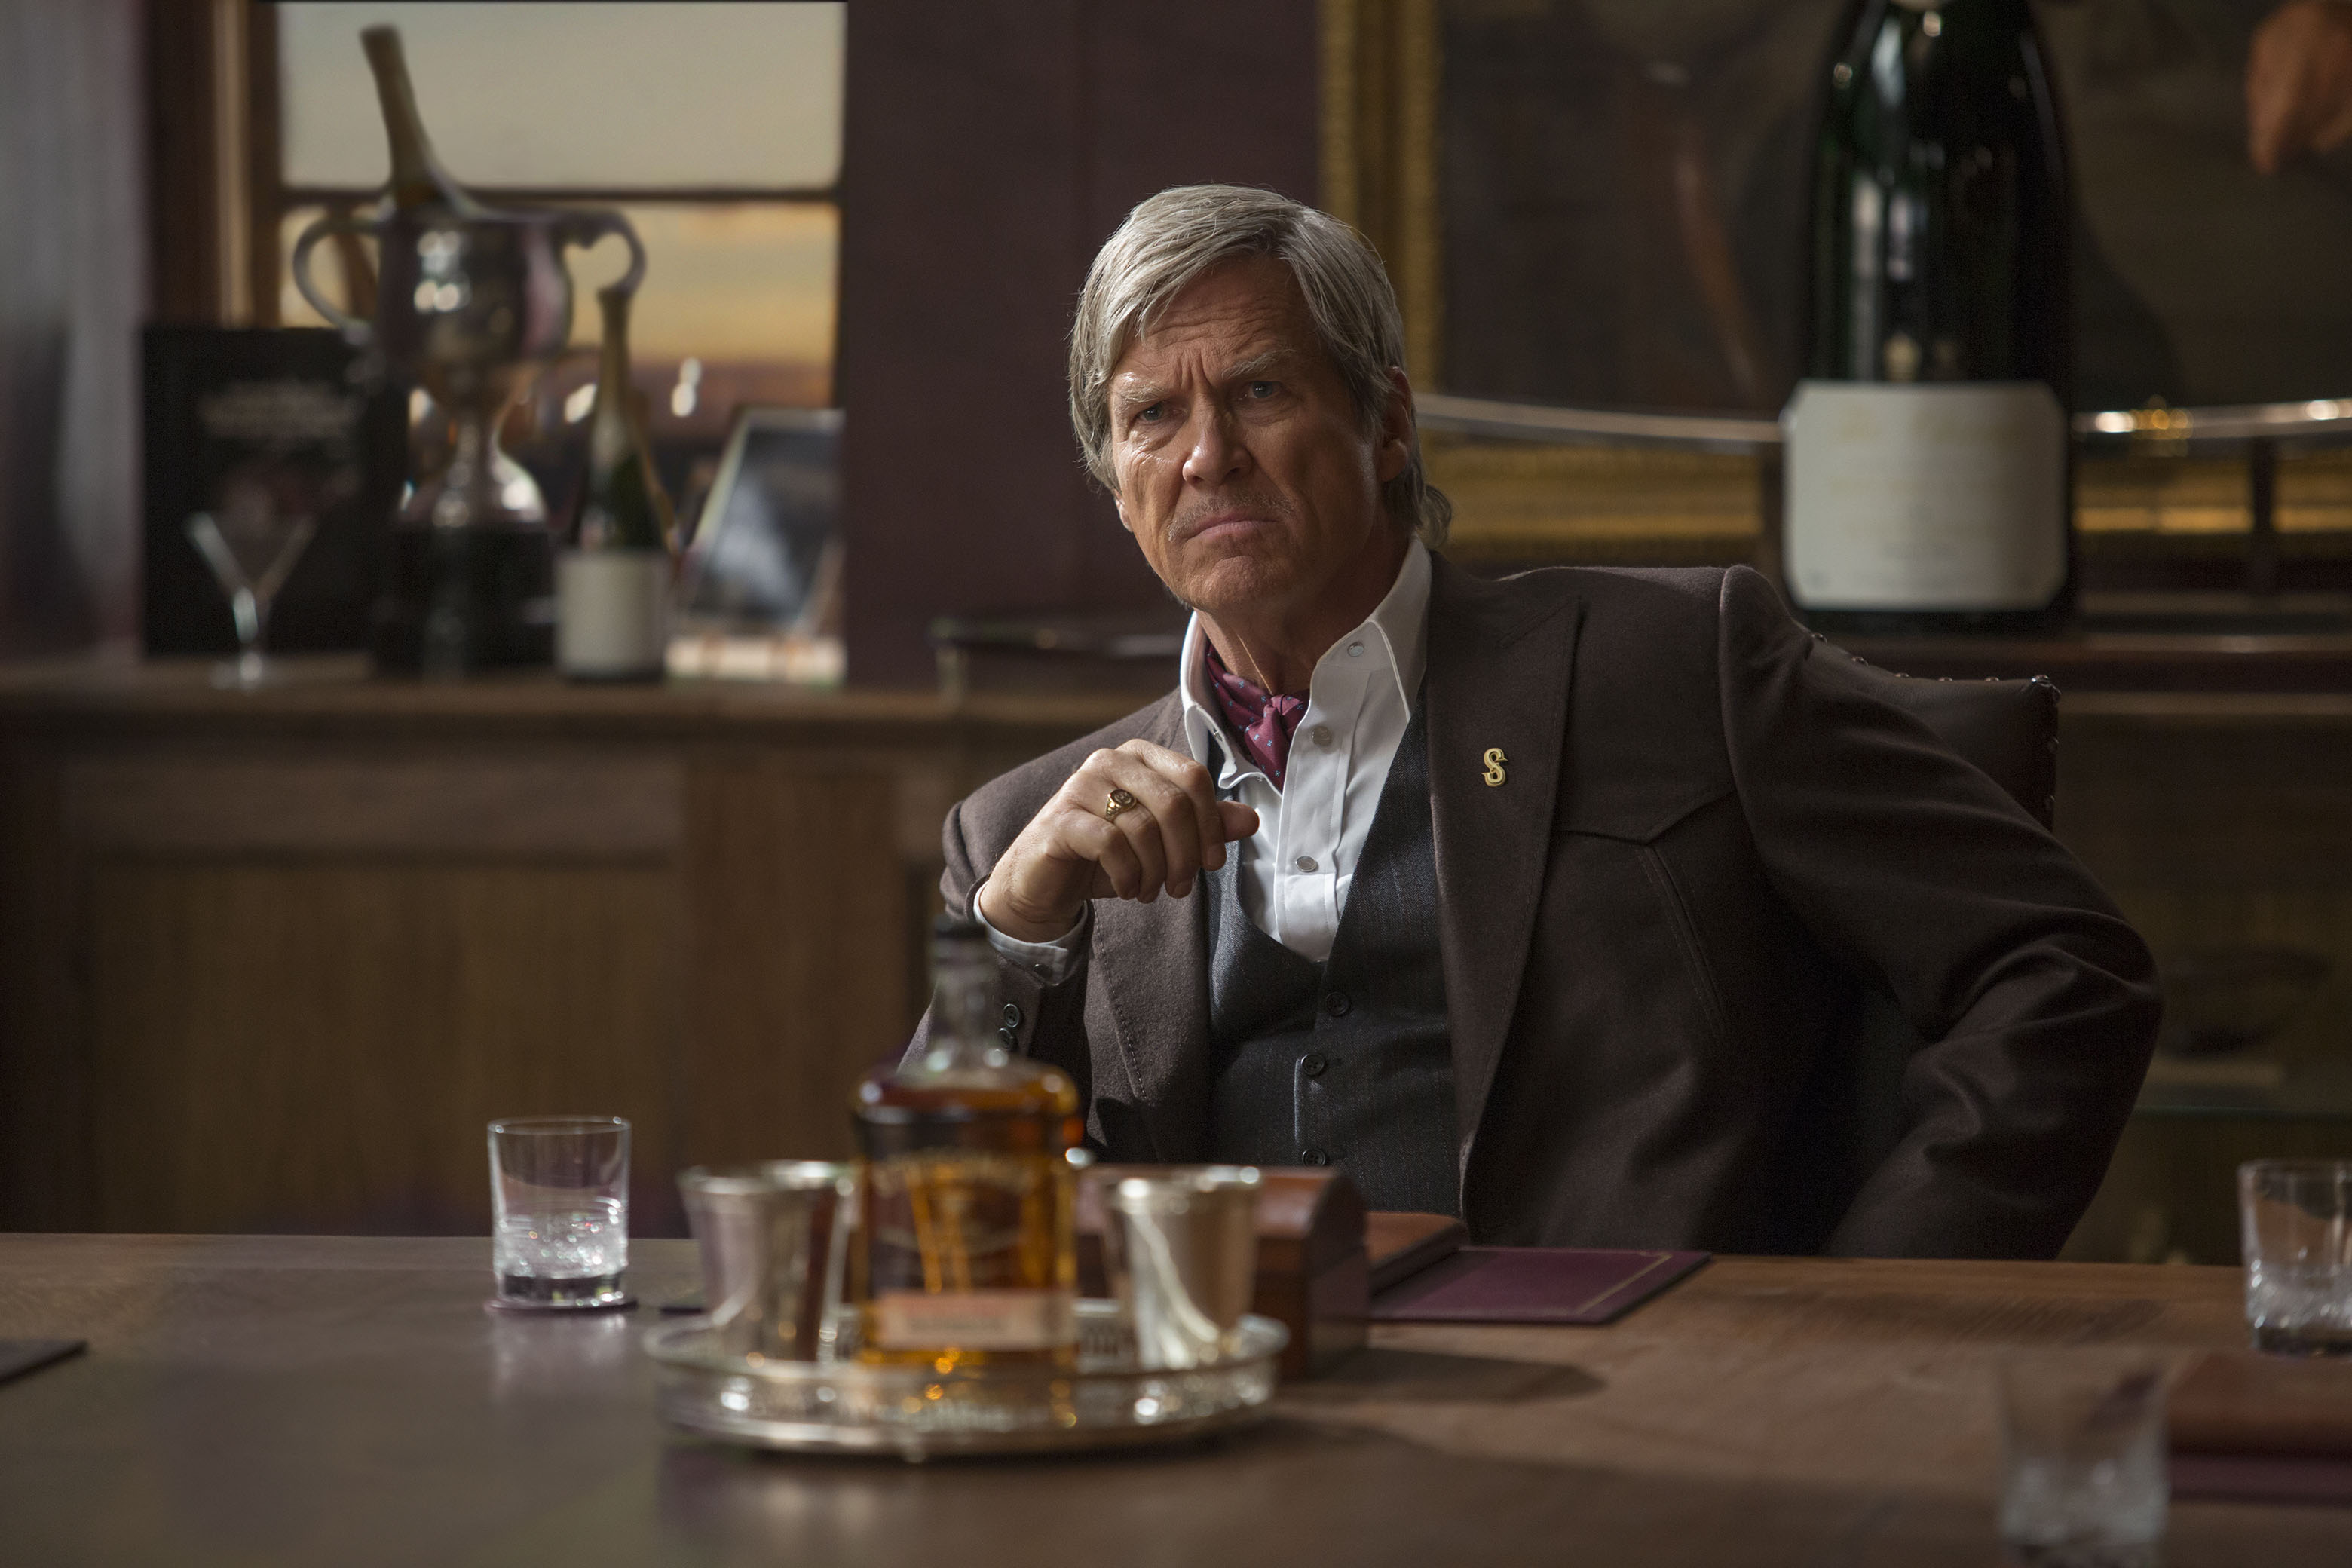 JEFF BRIDGES. The Hollywood icon plays a whiskey-drinking cowboy named Champagne. Photo by Giles Keyte/ 20th Century Fox